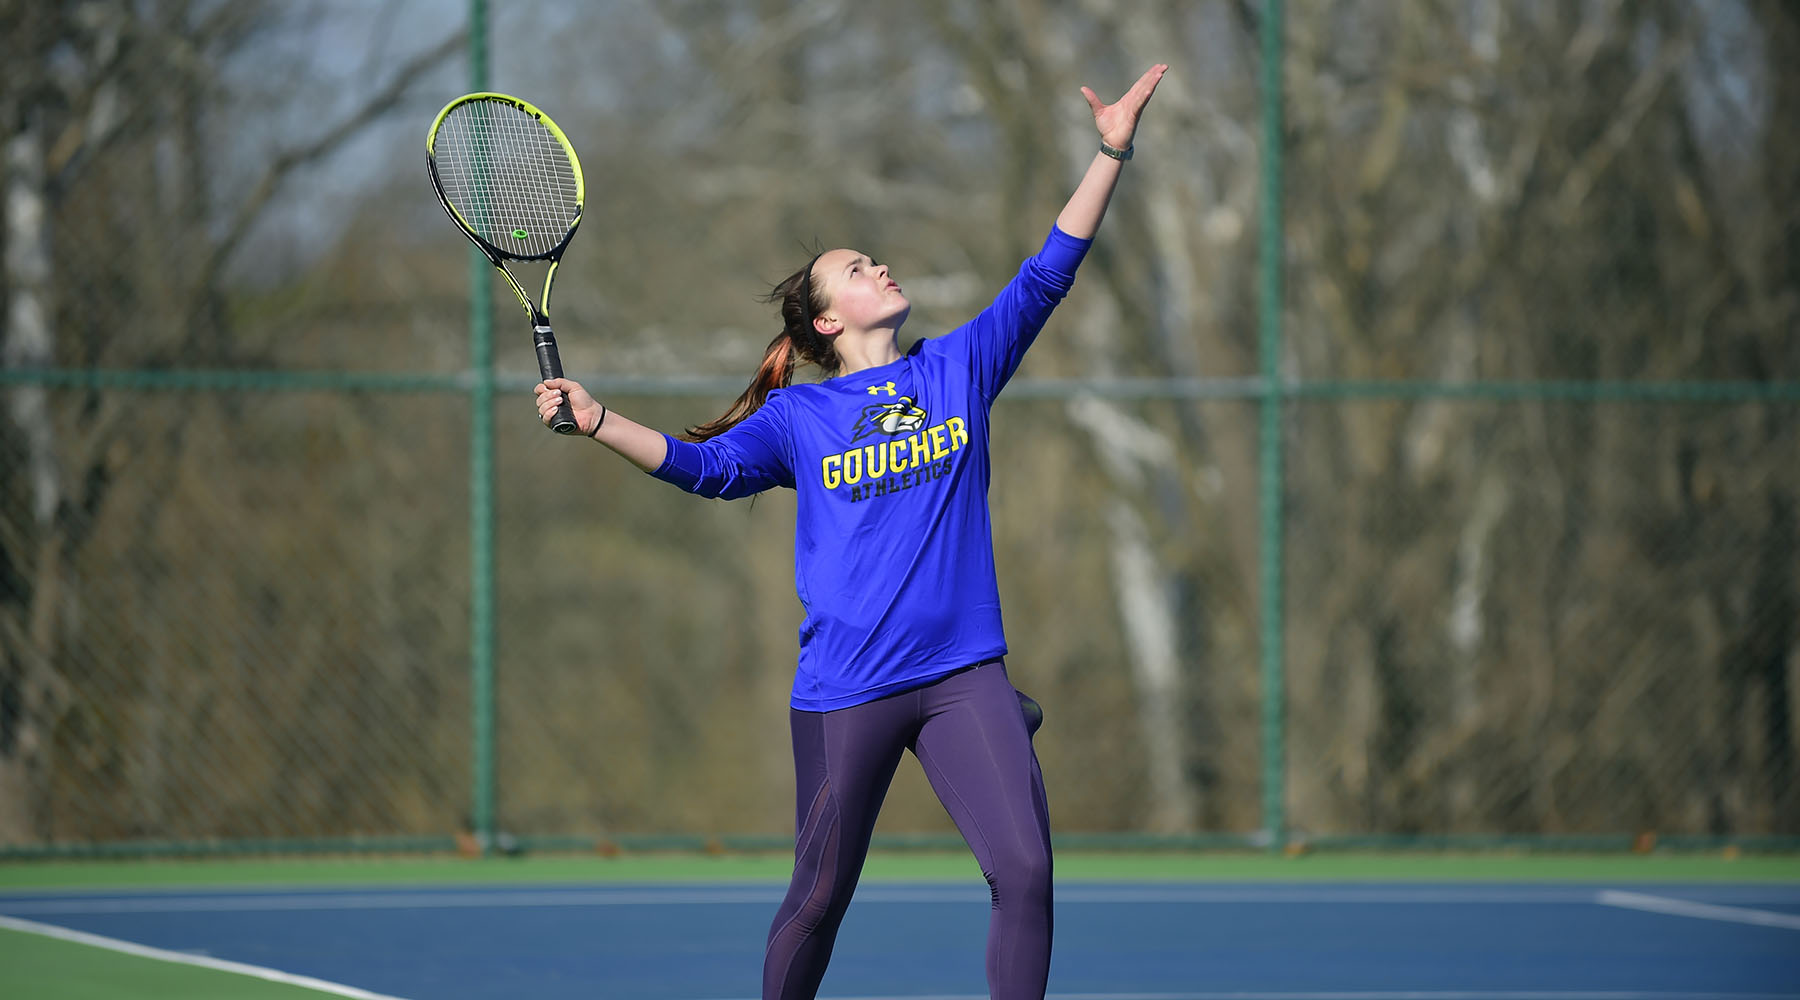 Women's Tennis Ends Fall Campaign with 8-1 win at York